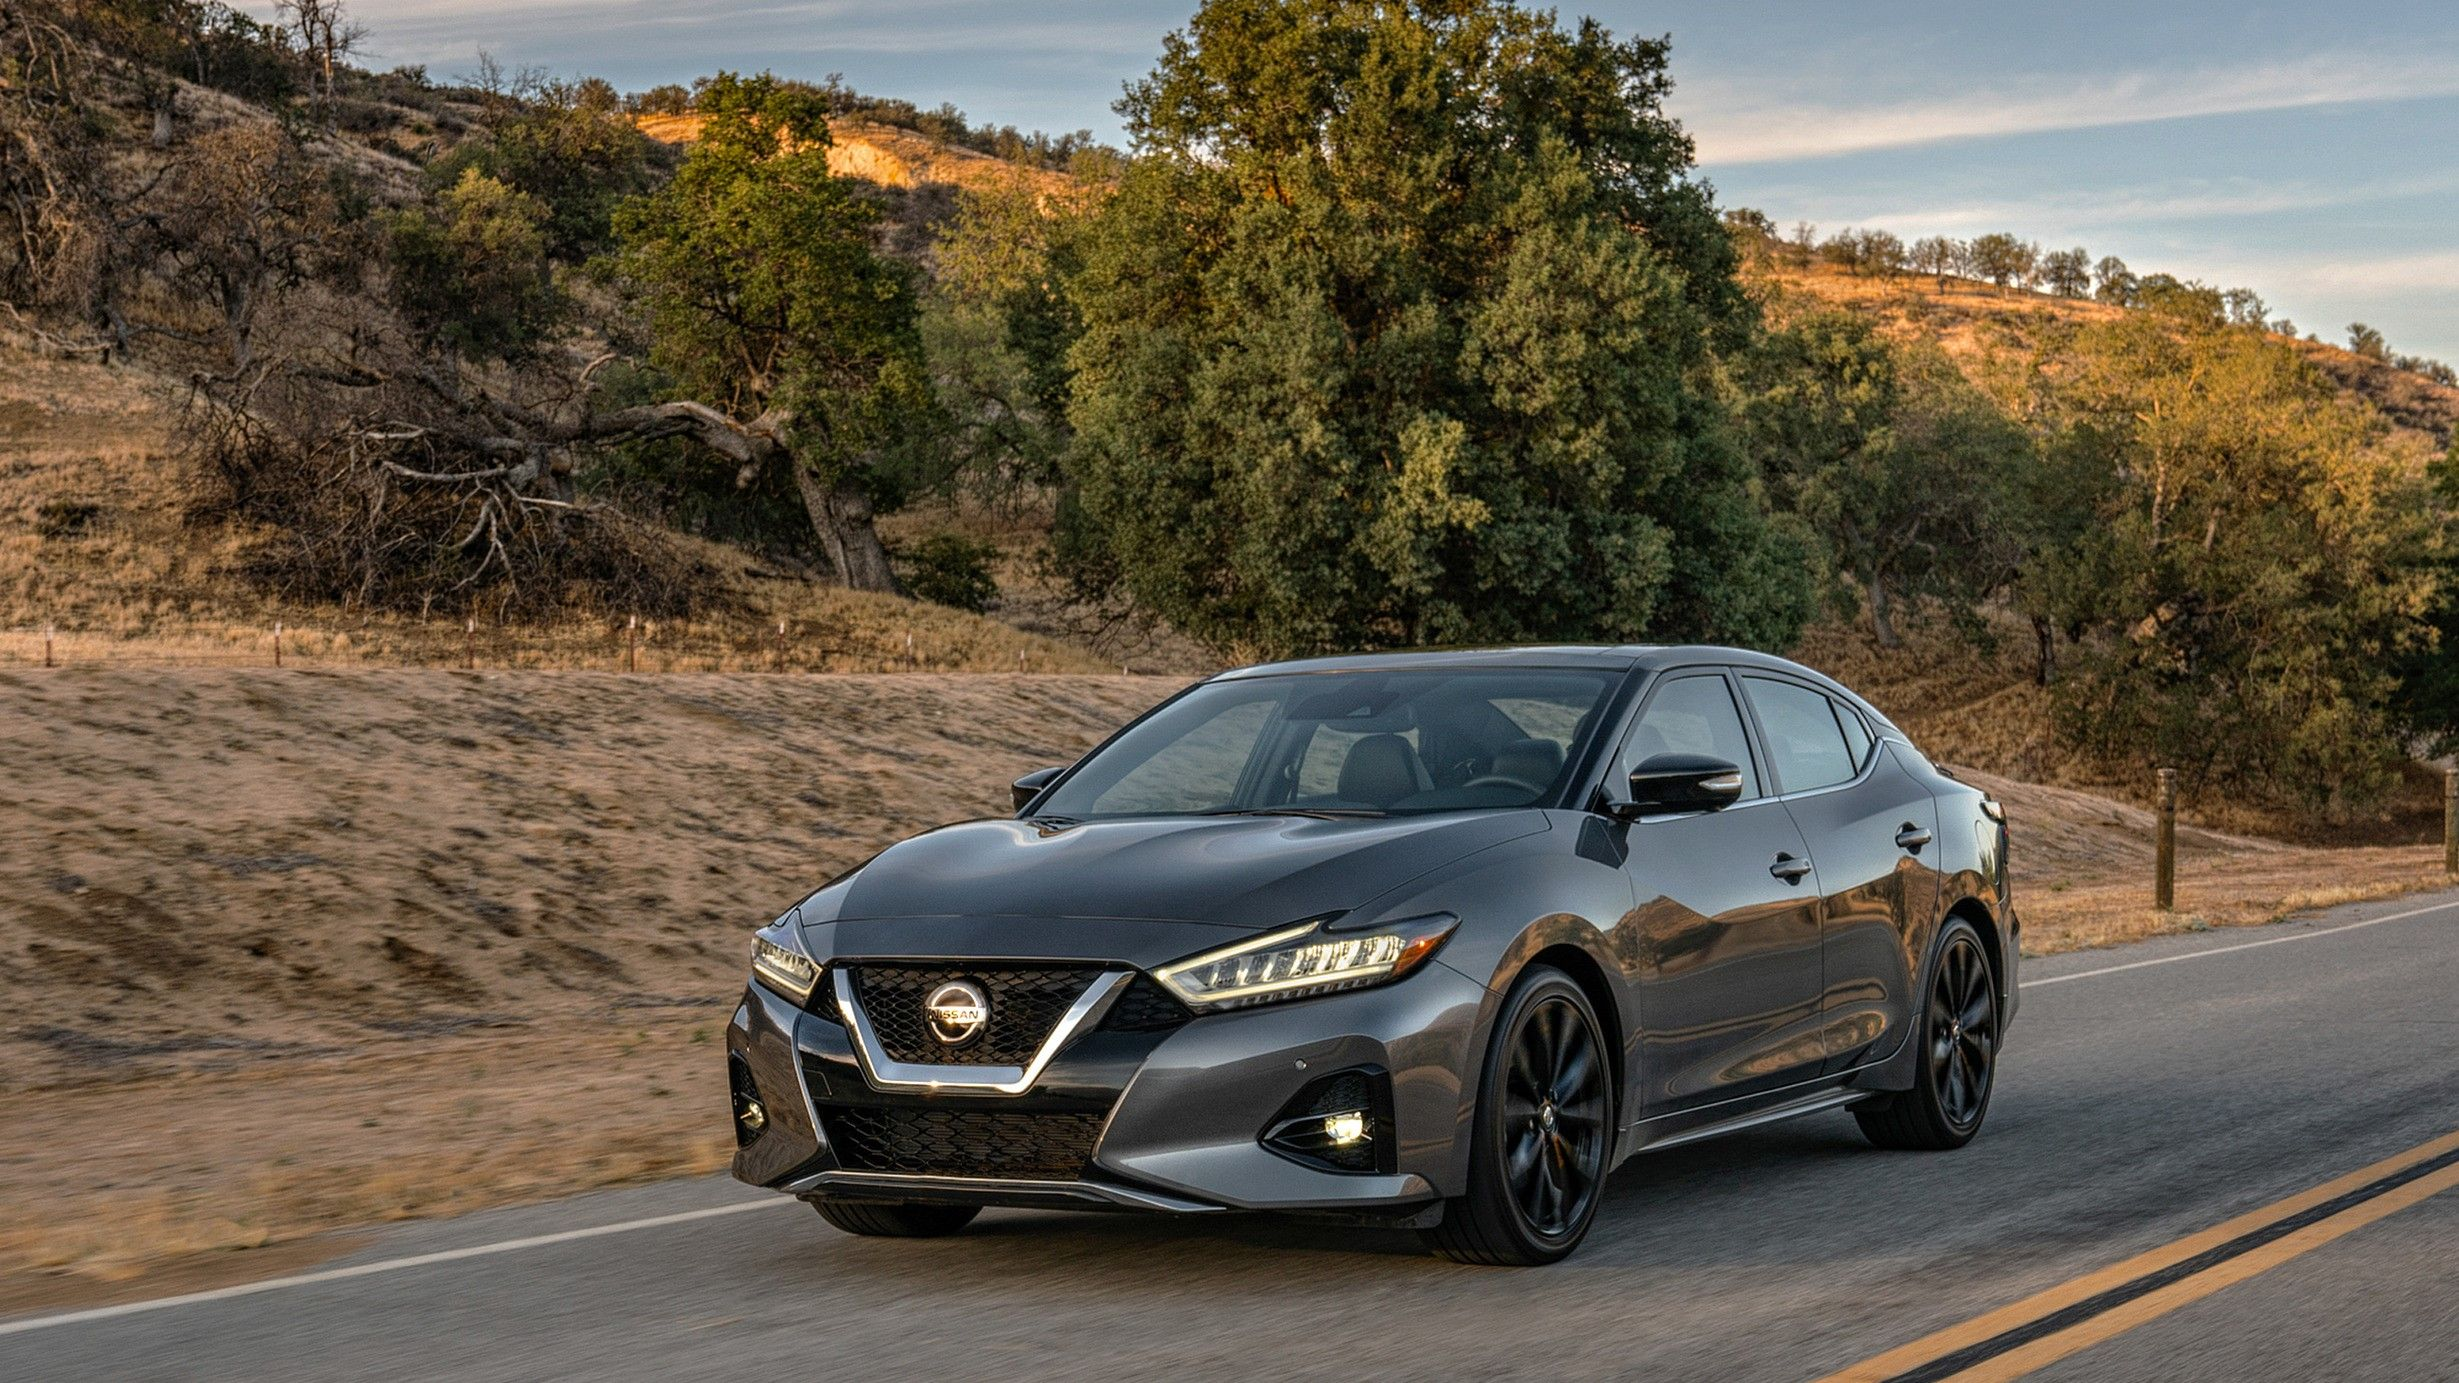 2021 nissan maxima review - trims, prices, features